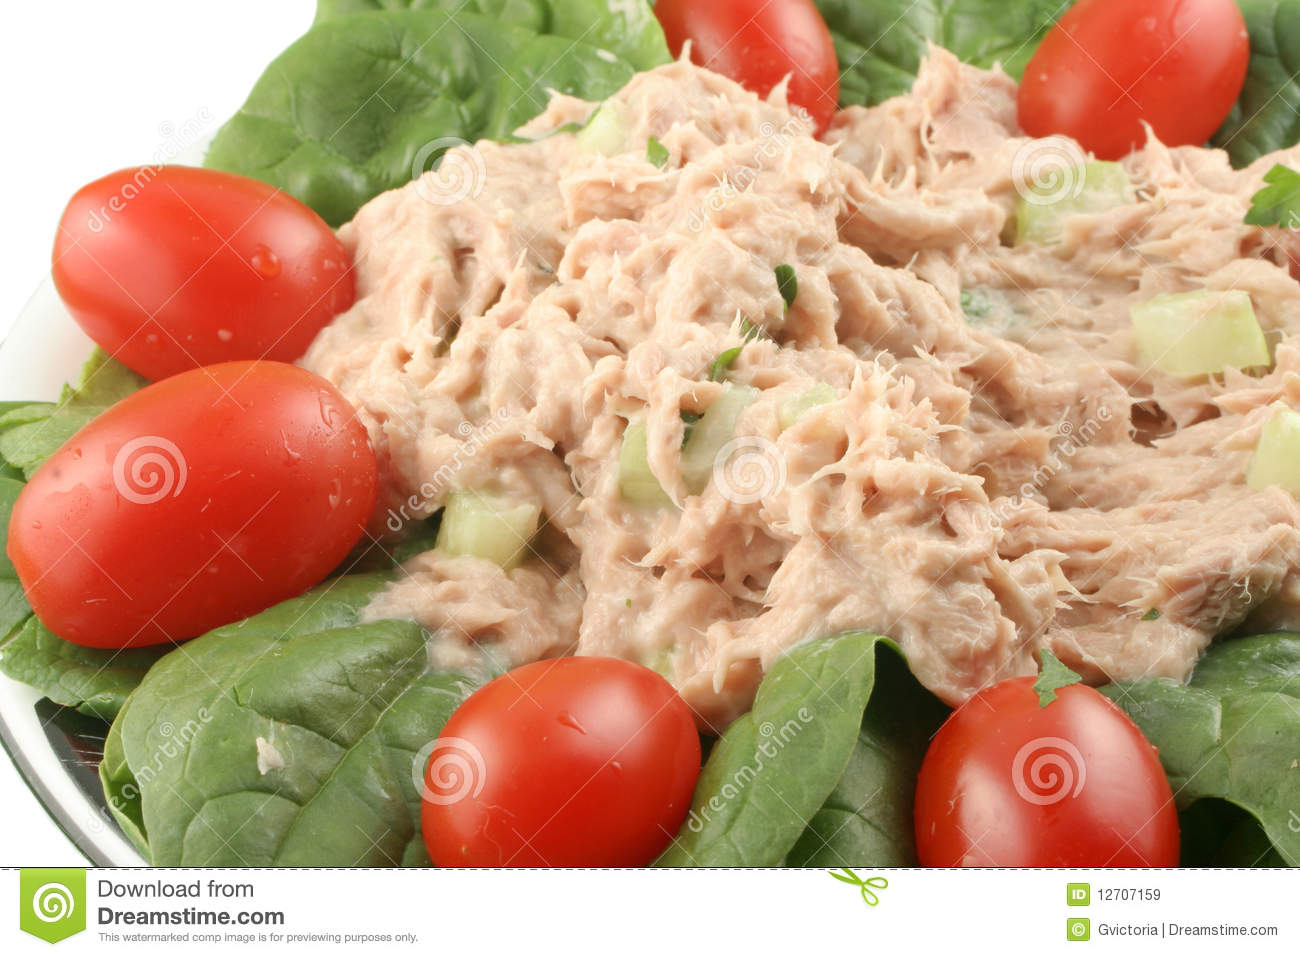 Healthy meal of tuna fish salad with cherry tomatoes and spinach.